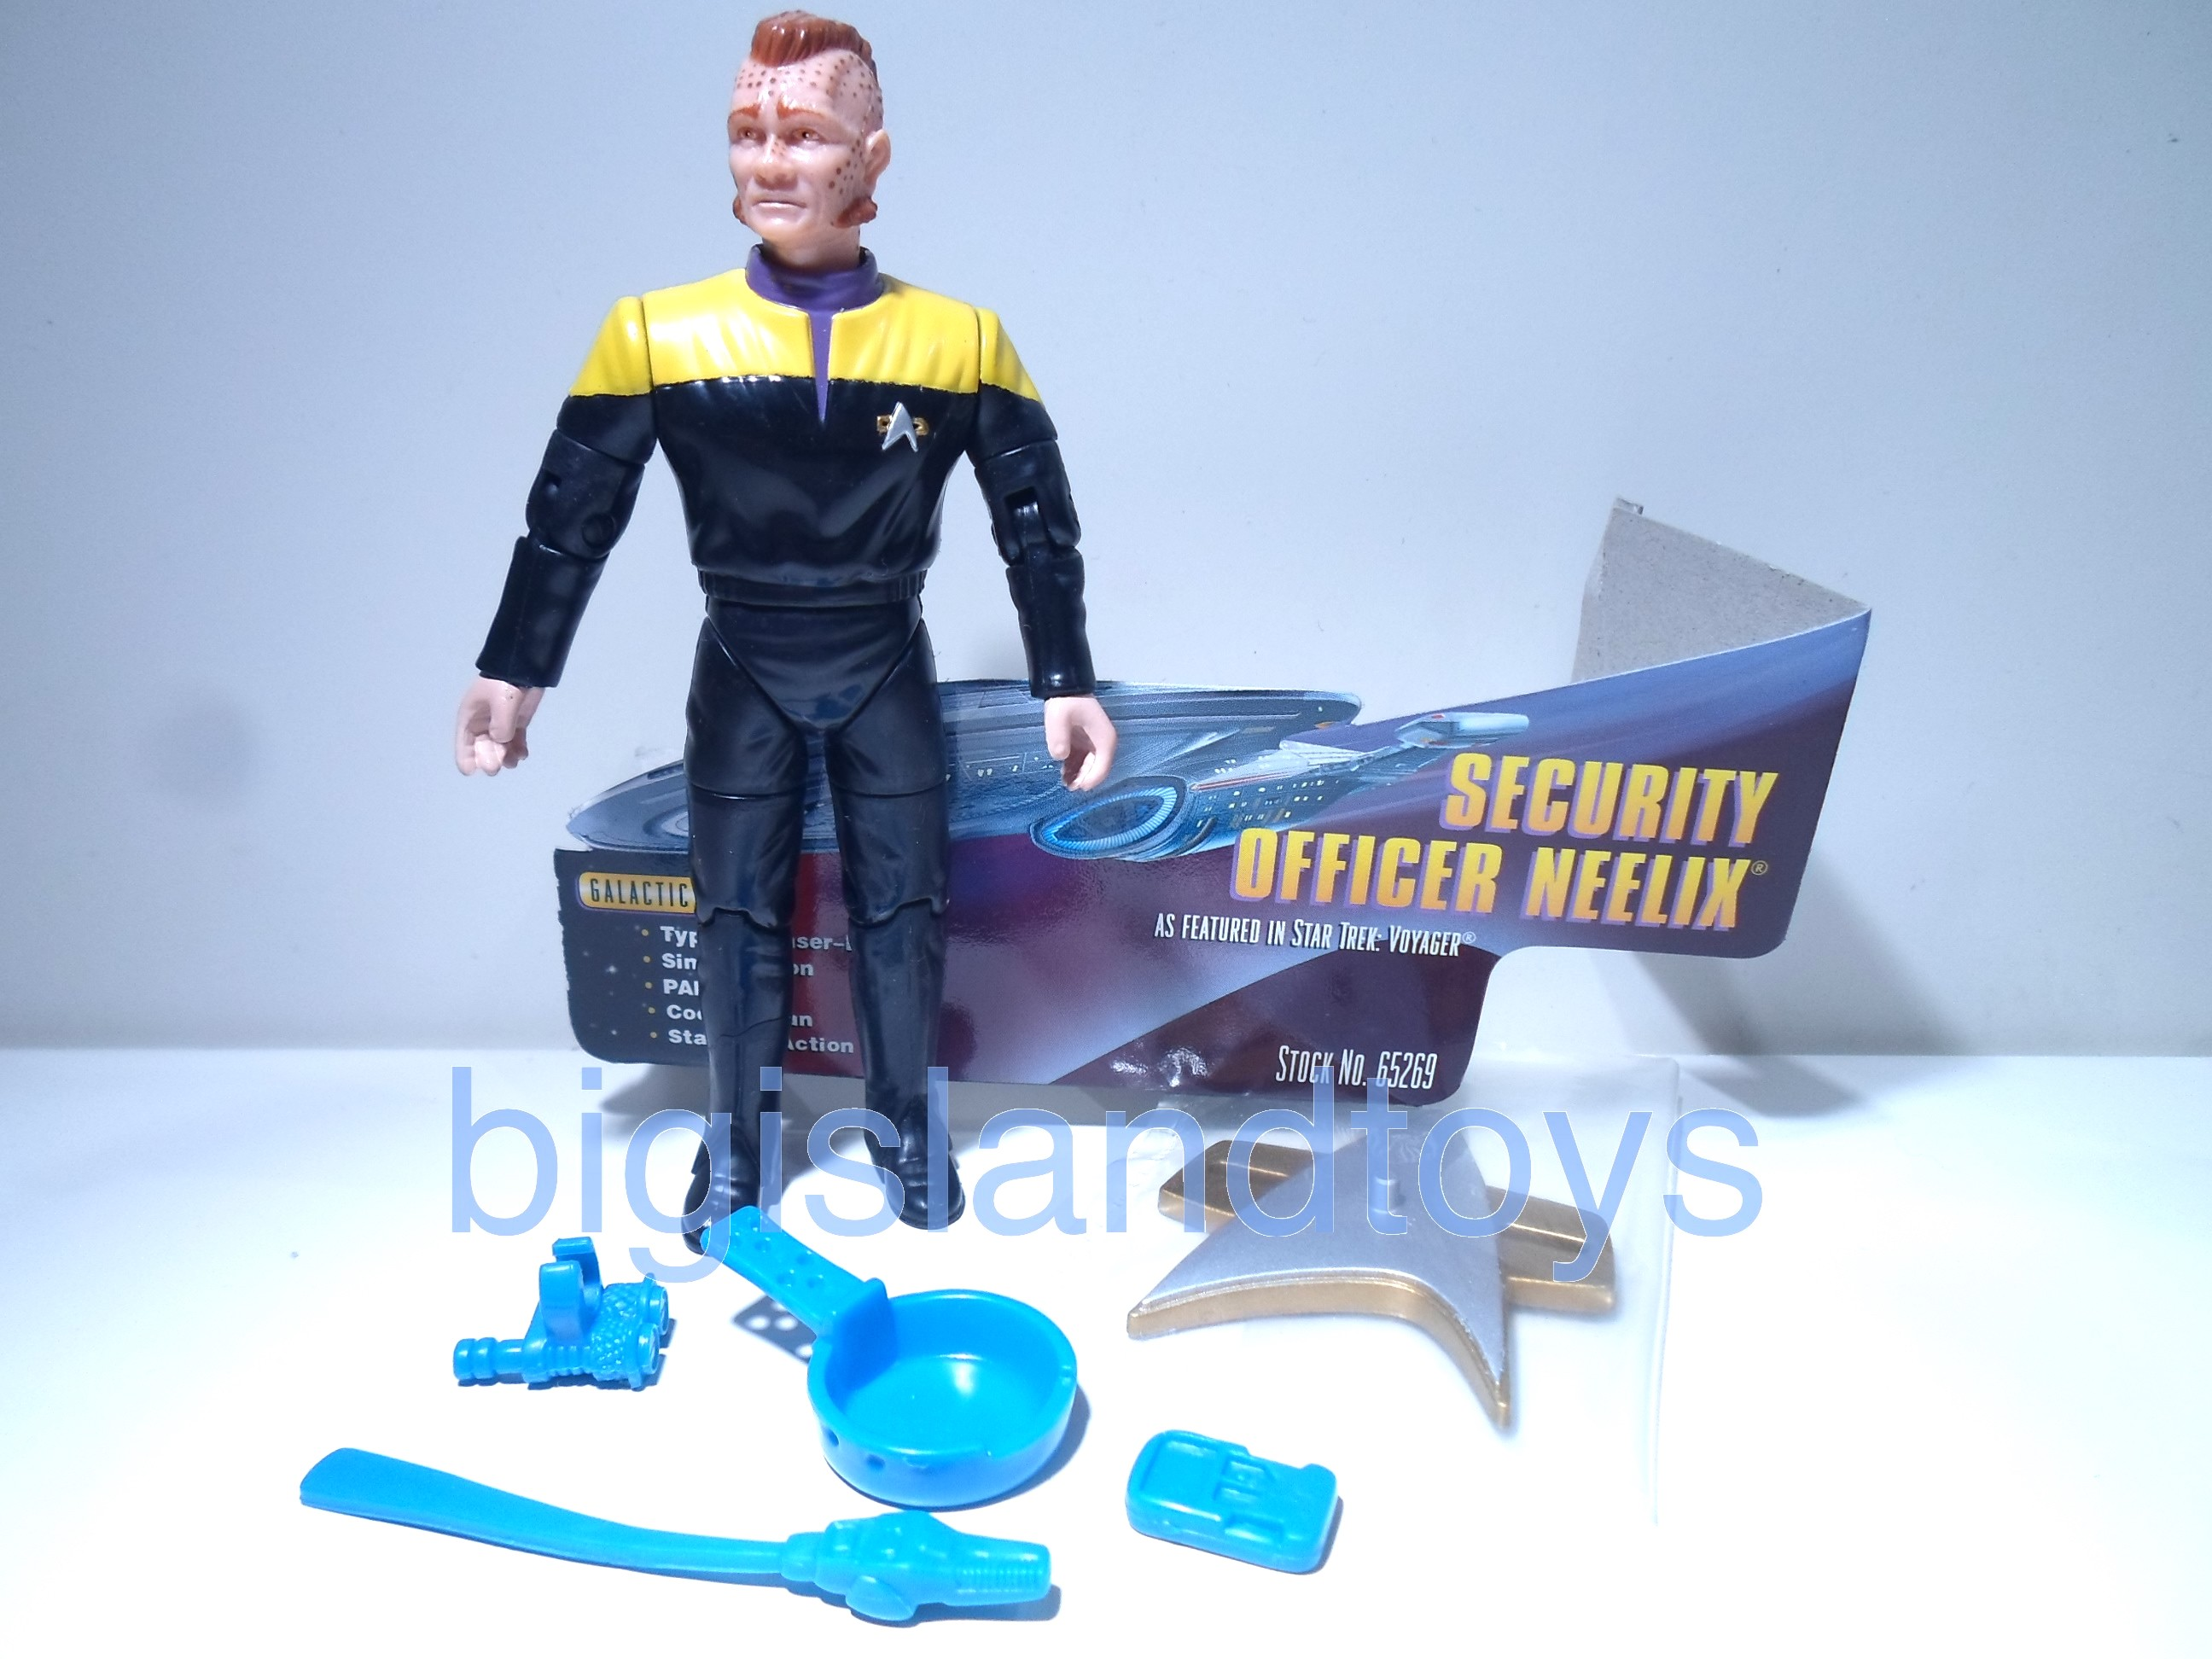 Star Trek  Warp Factor   Security Officer NeeilxSpencer Gifts